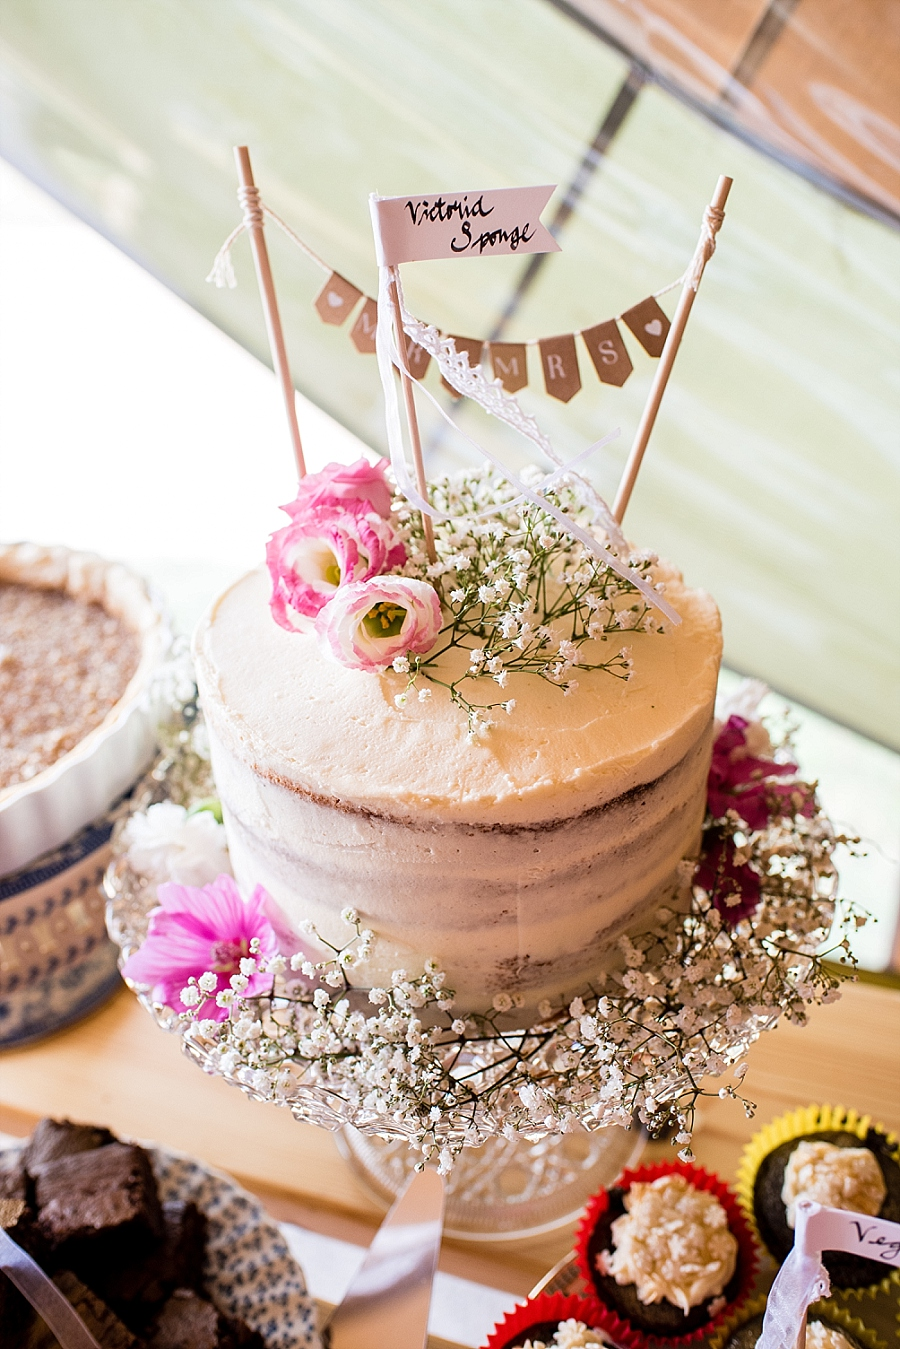 Tipi wedding styling ideas from the Hidden Hive, boho wedding on the English Wedding Blog (20)